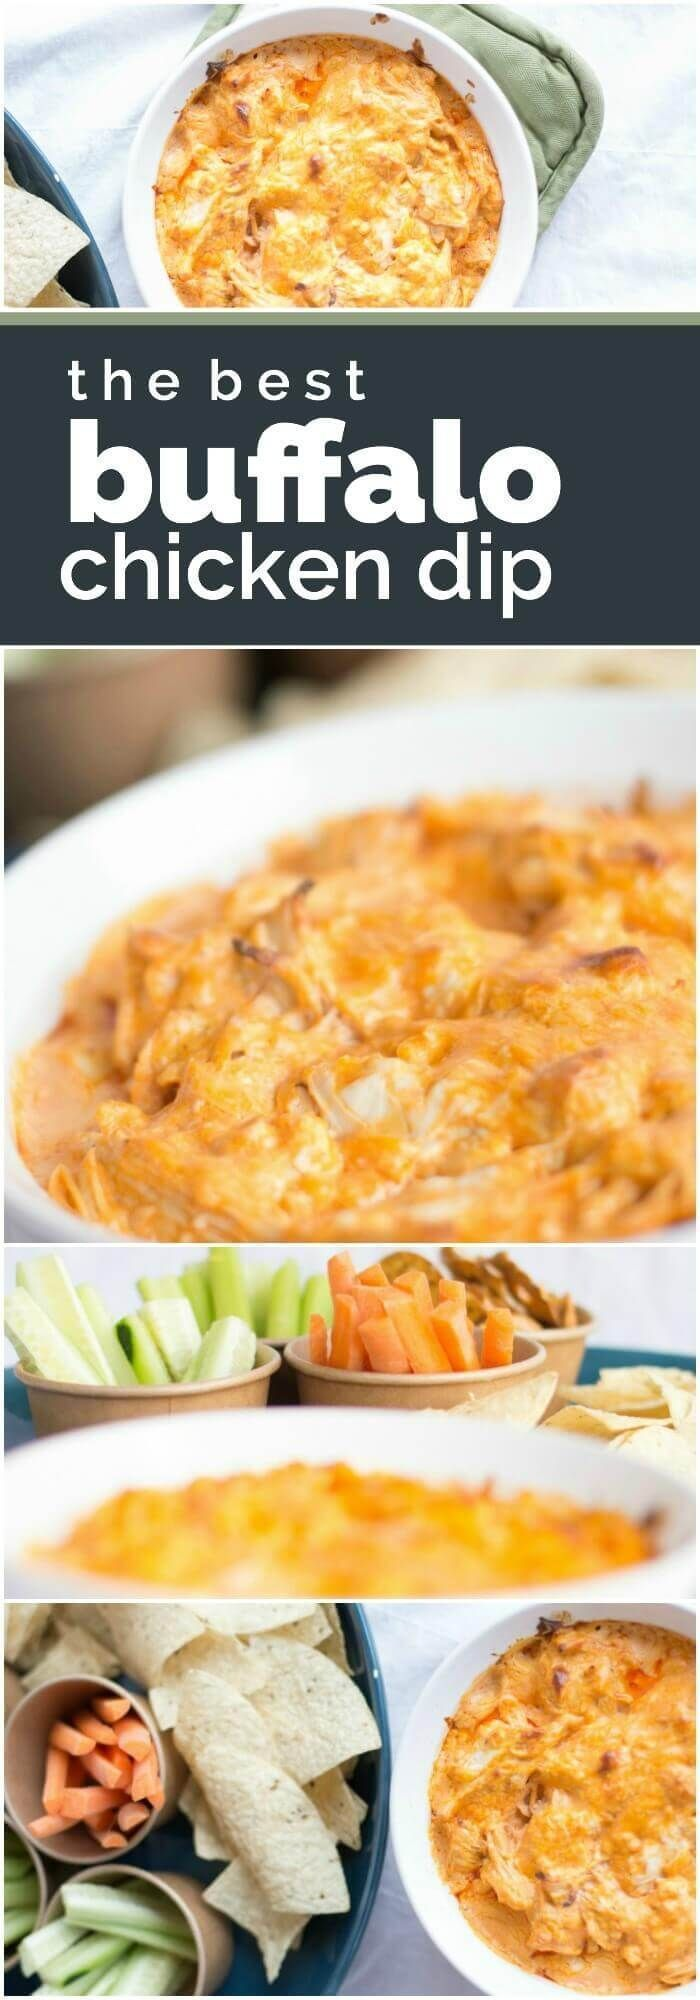 This Buffalo Chicken Dip Recipe is easy to make and delicious -- the perfect appetizer idea for your party! (Dip Recipes)